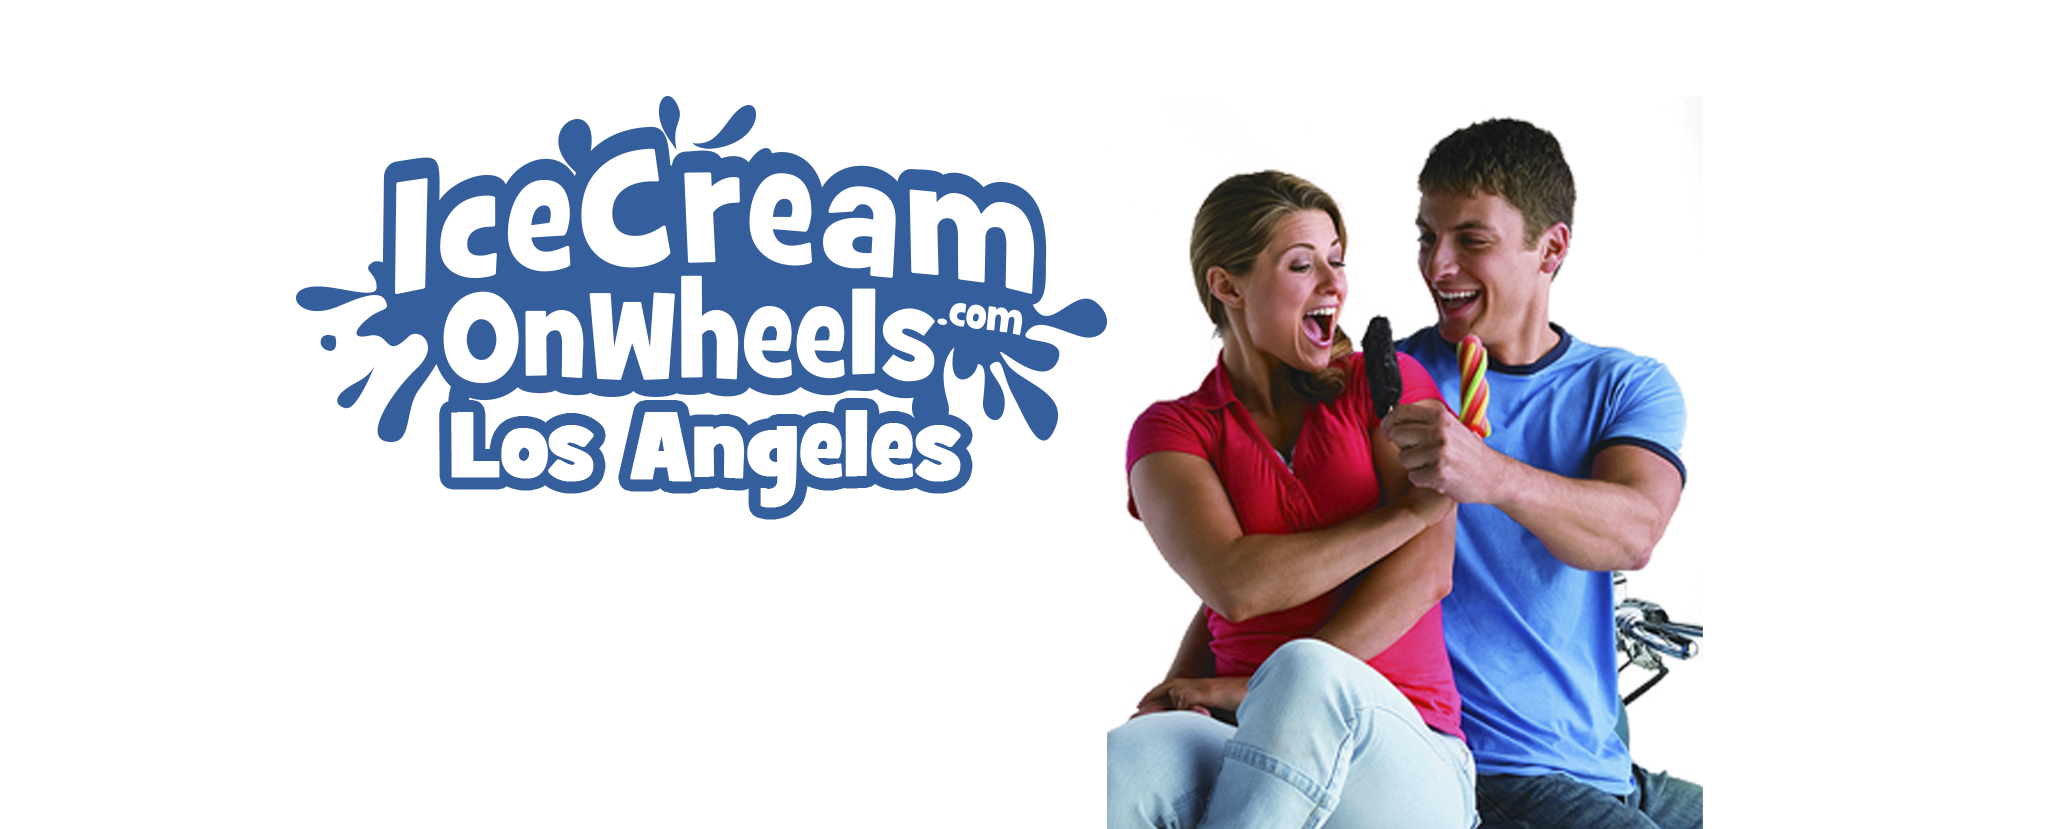 Festival Ice Cream Trucks Los Angeles County